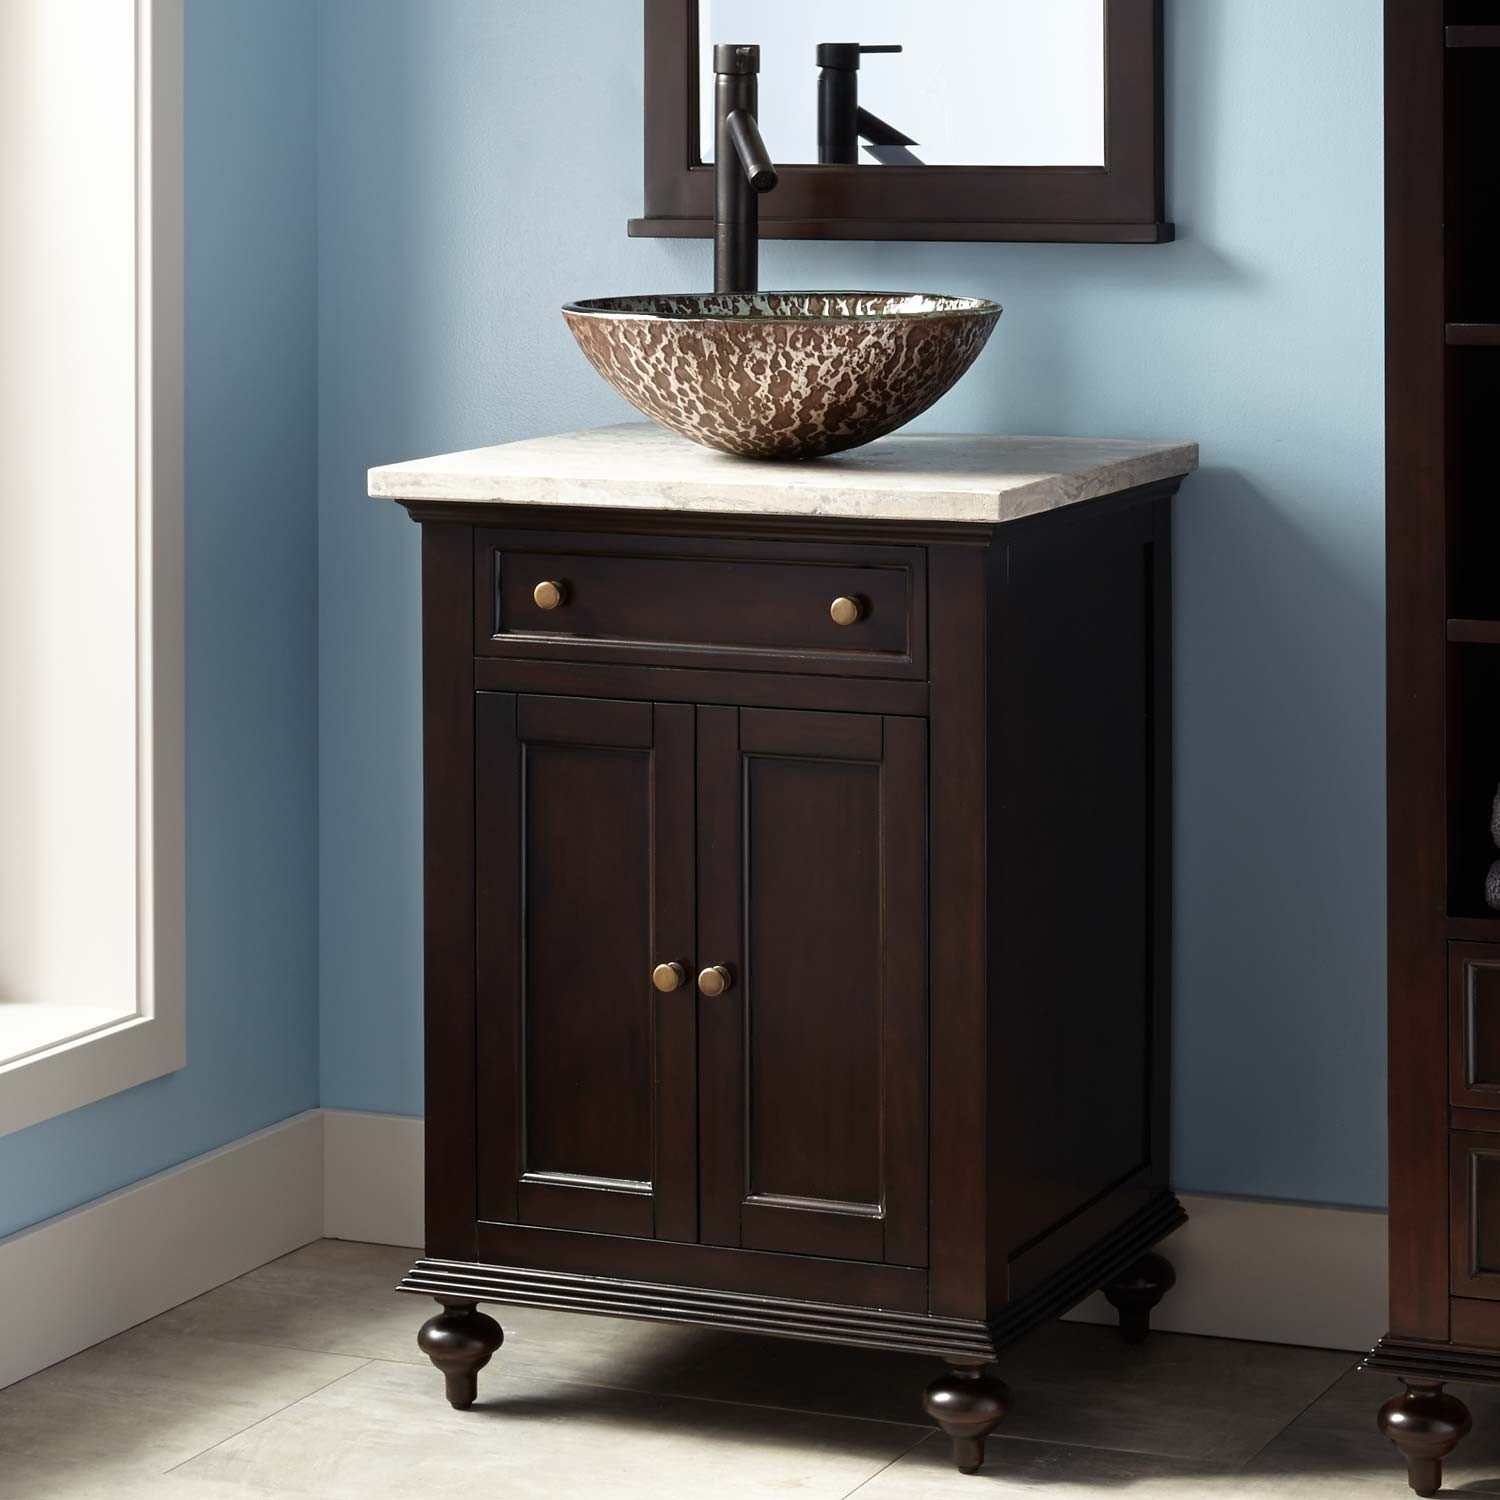 Picture of: Bathroom Vanities With Bowl Sinks Vessel Sink For Small Bathrooms In Layjao